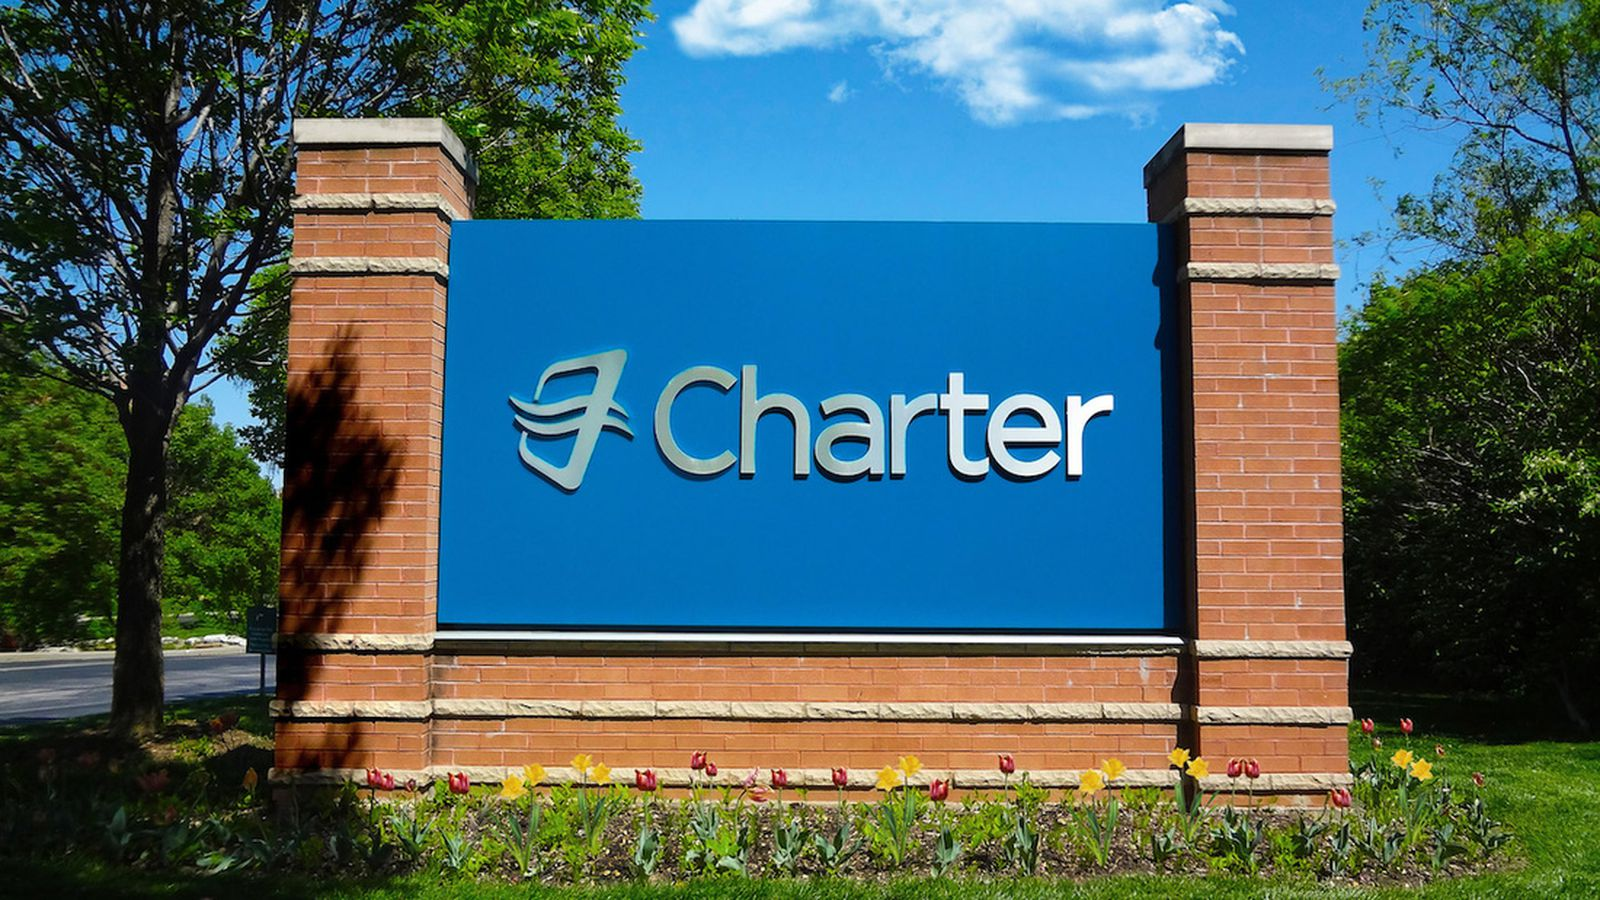 Charter officially owns Time Warner Cable, creating the US's second largest cable provider | The Verge